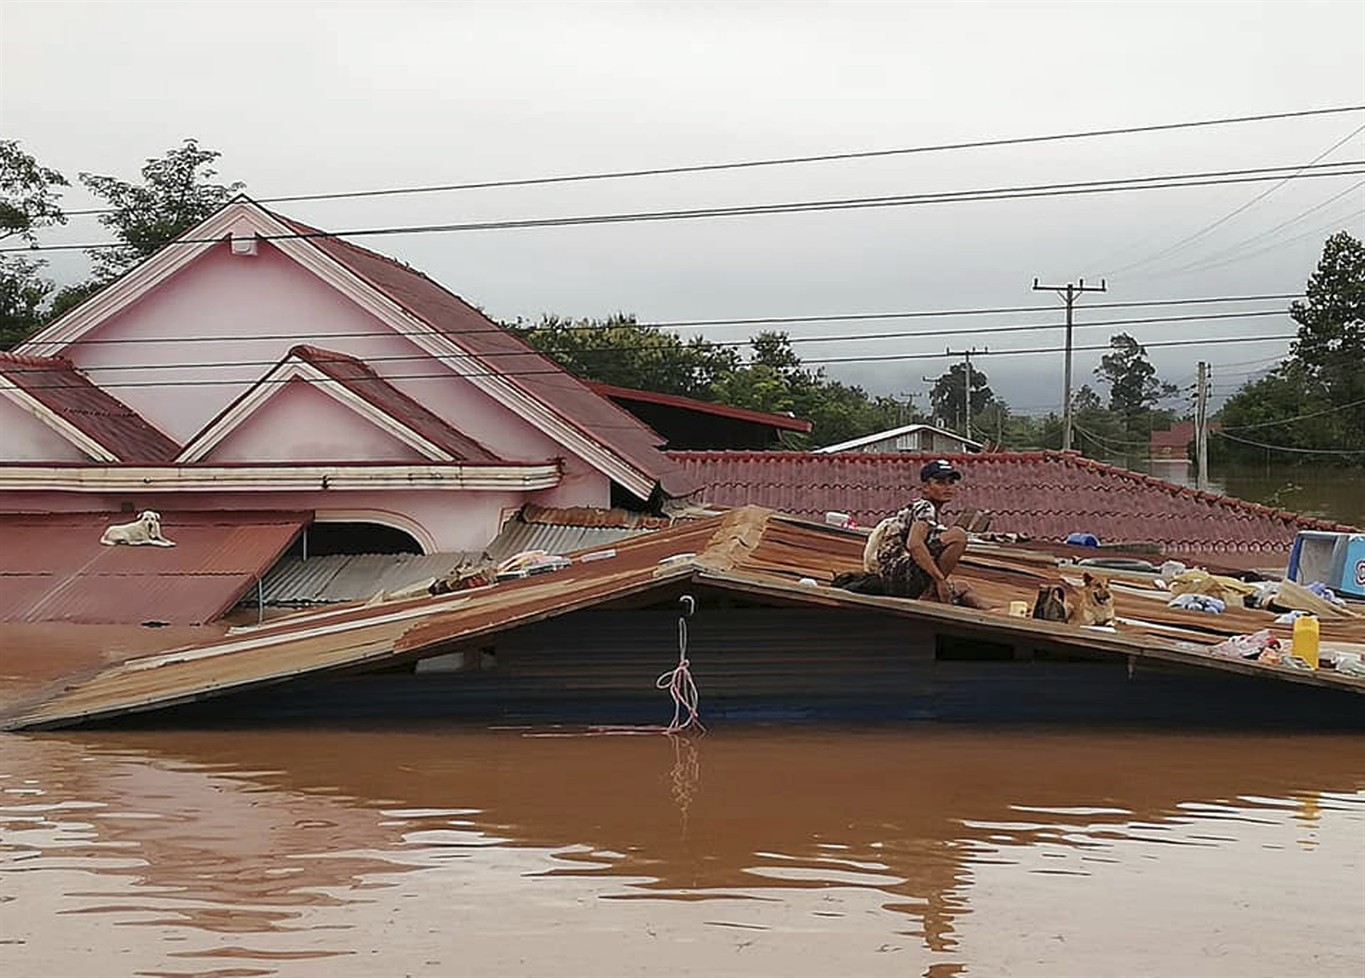 Hundreds missing, 6,000 people homeless after dam breaks near Laos